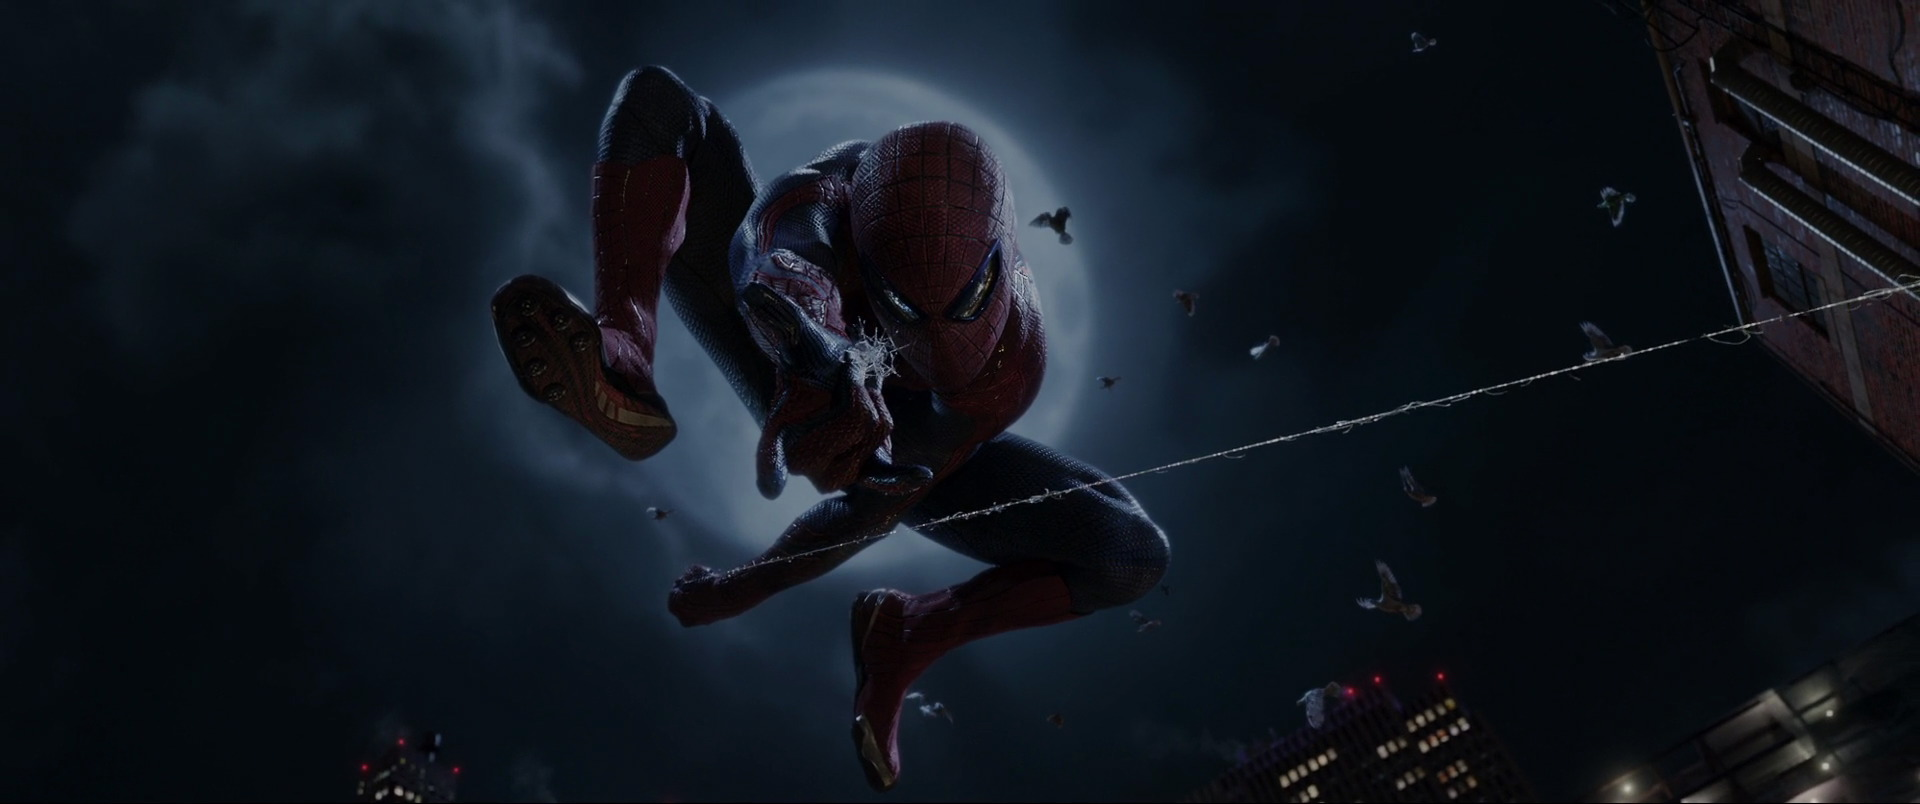 amazing-spider-man-movie-screencaps-com-15223